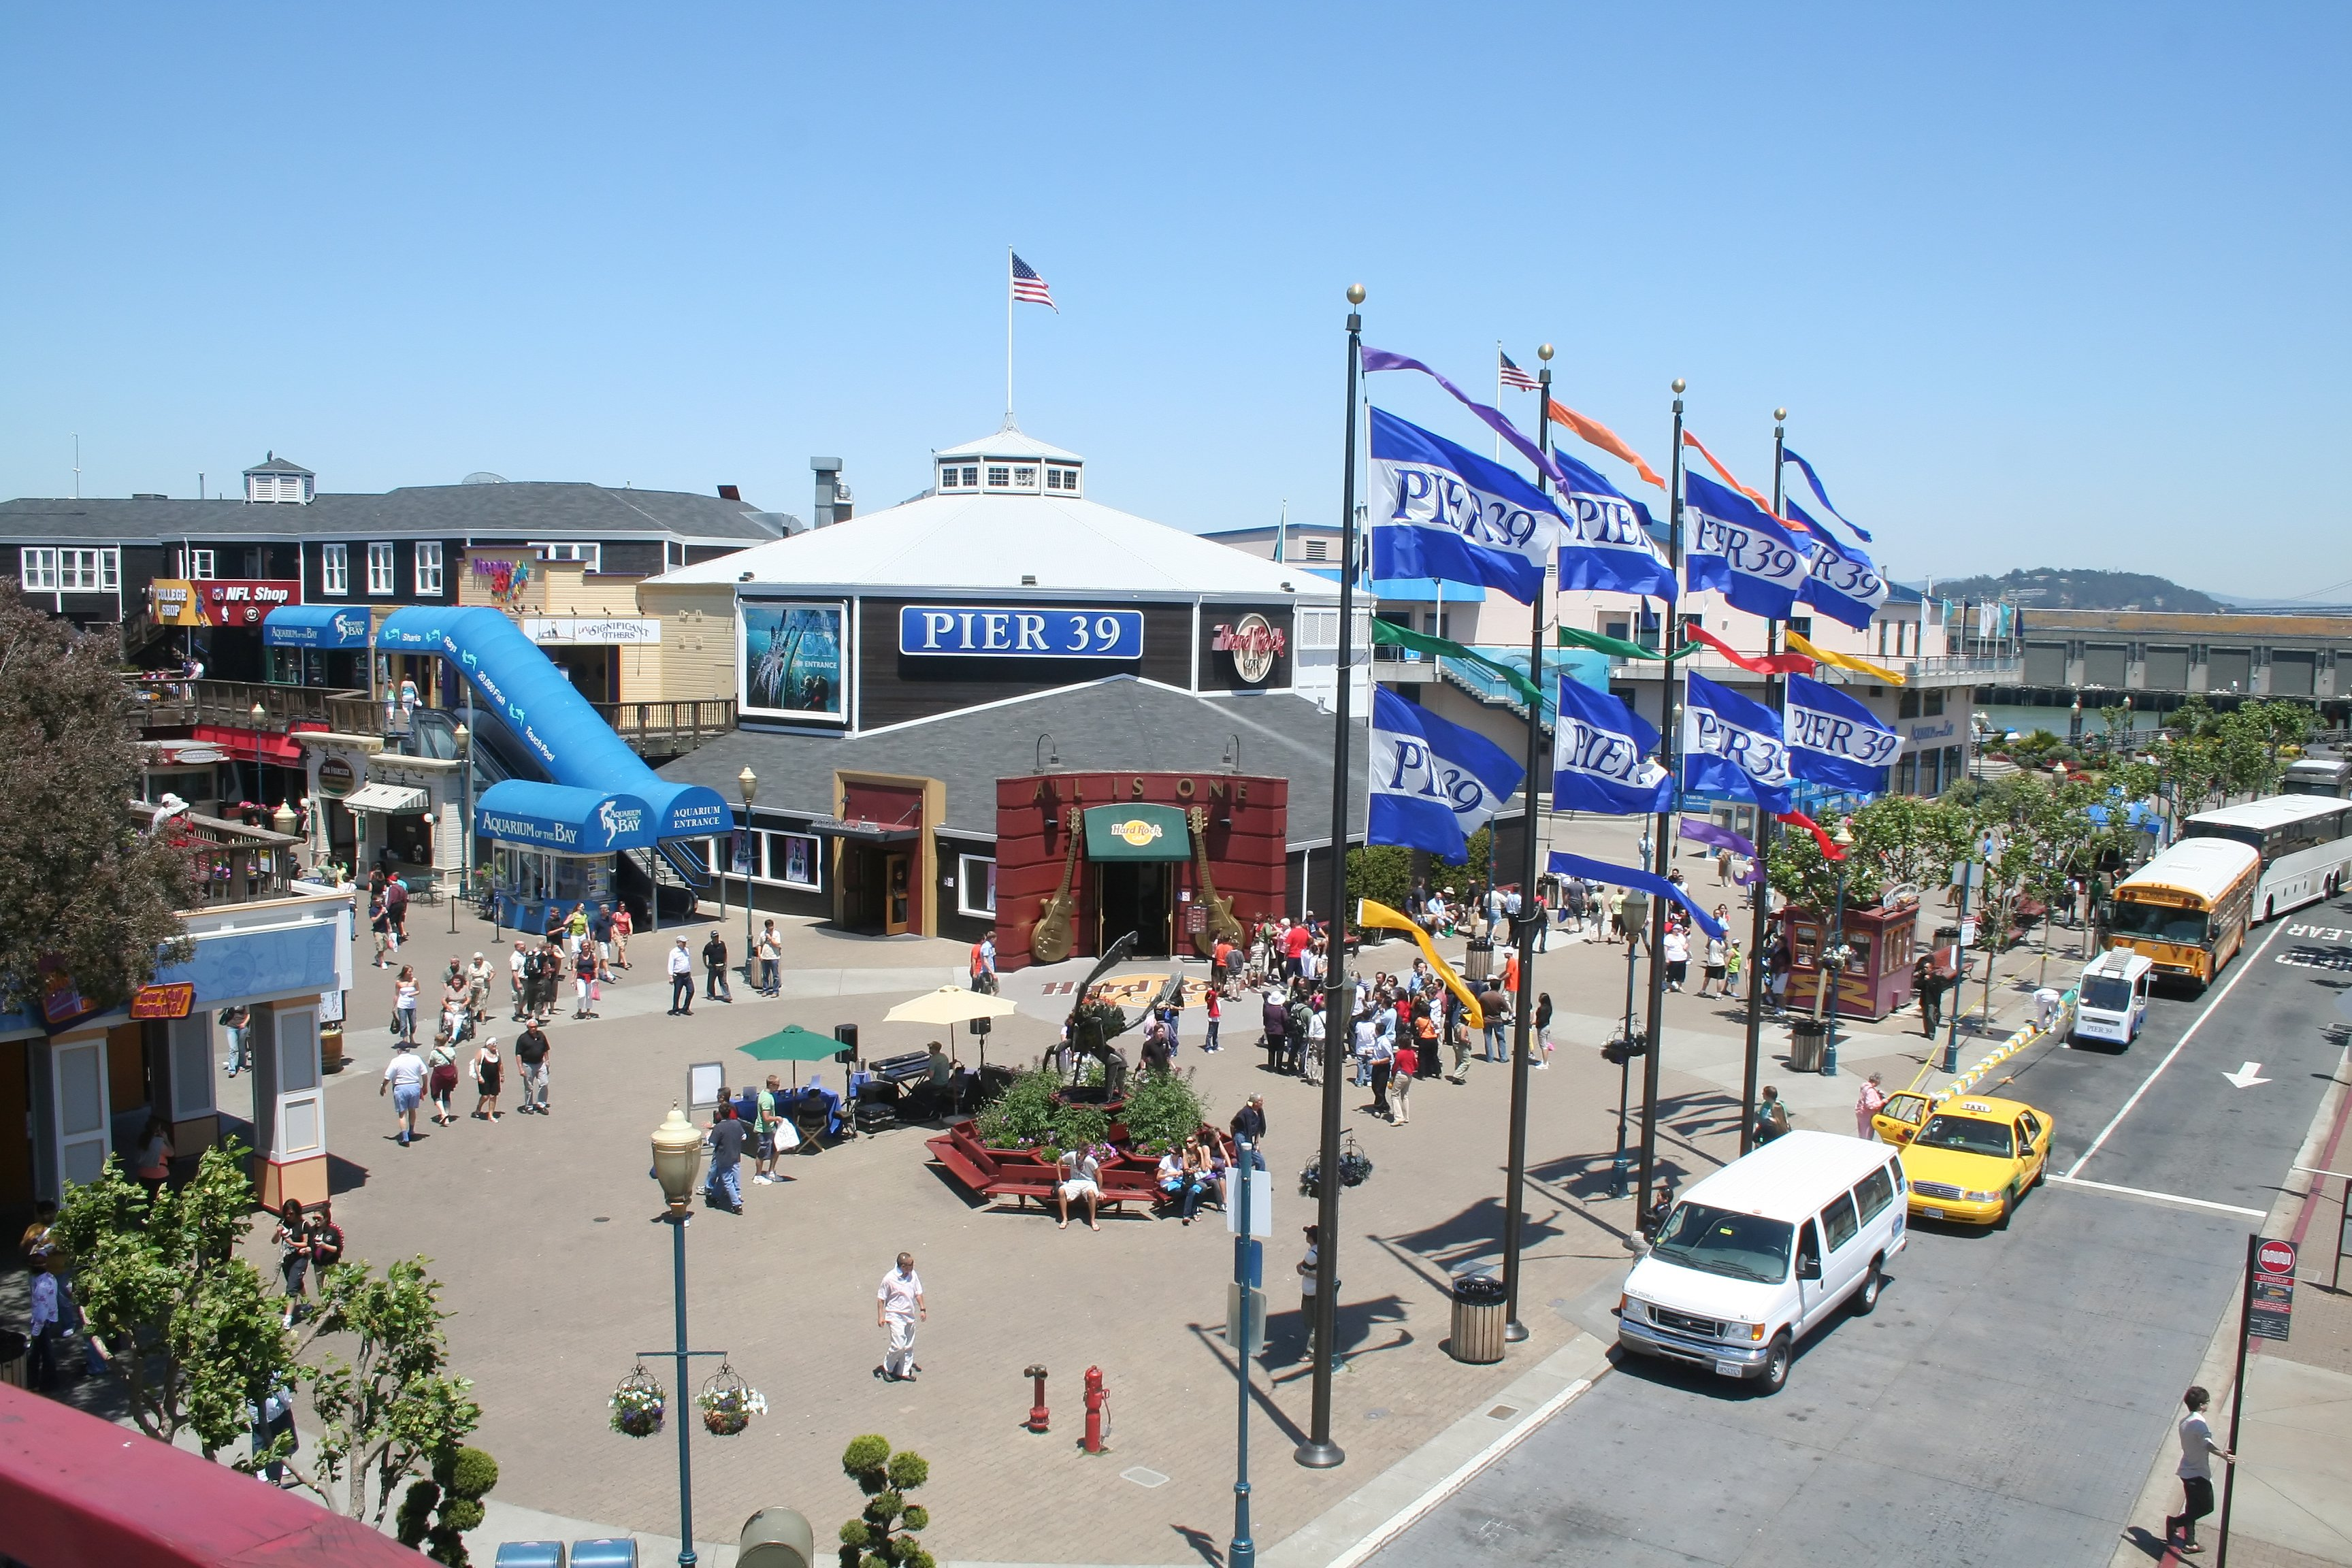 The entrance to Pier 39 and Aquarium of the Bay in San Francisco